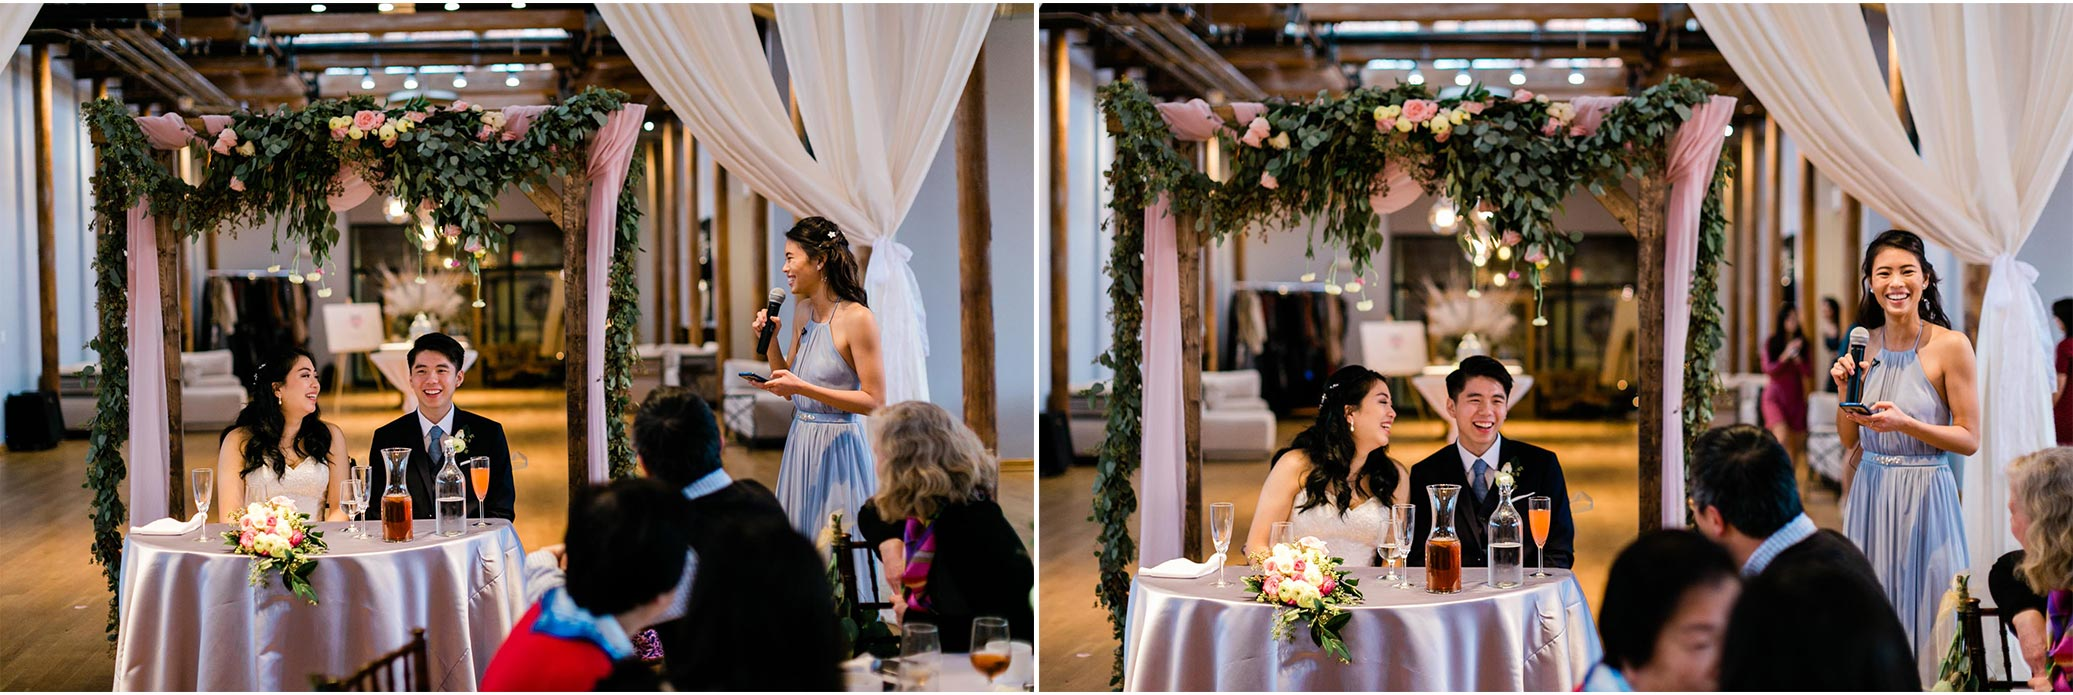 Maid of Honor giving speech during reception | The Cotton Room | Durham Wedding Photographer | By G. Lin Photography